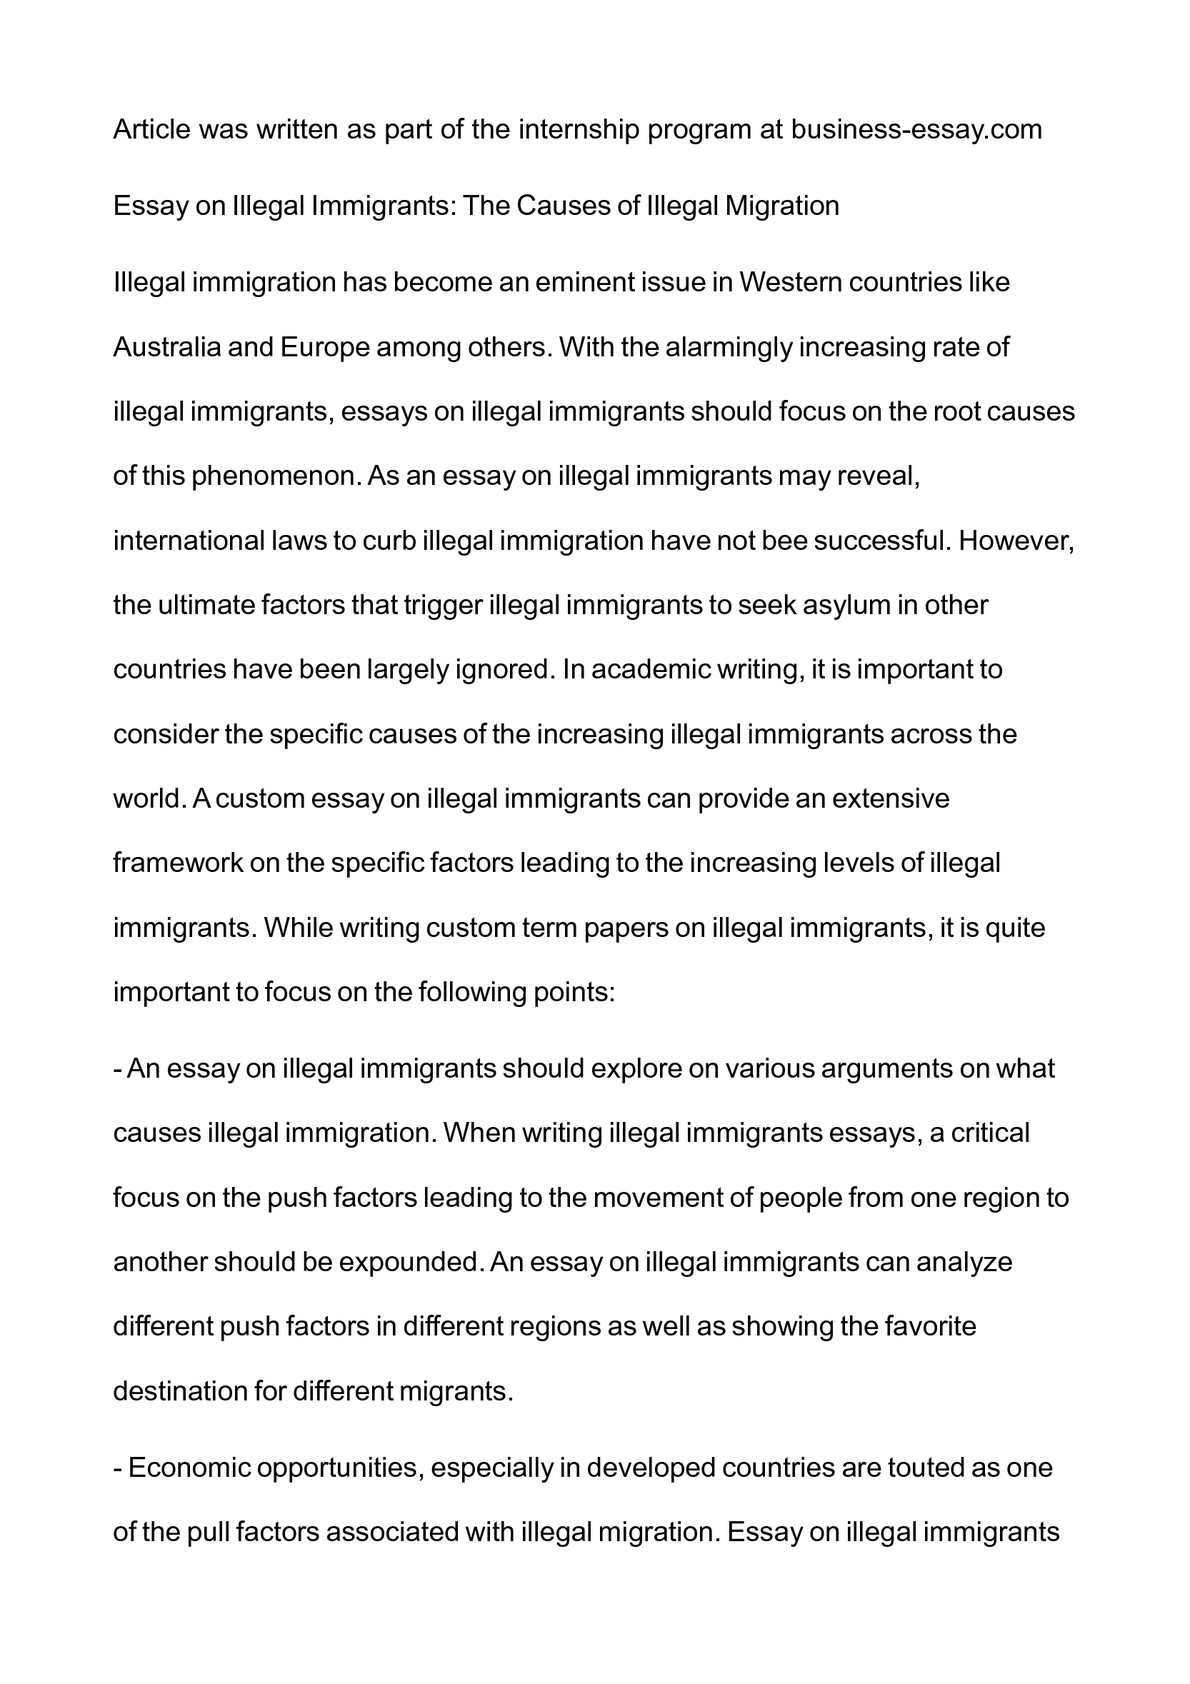 illegal immigration essays calaméo essay on illegal immigrants the causes of illegal migration